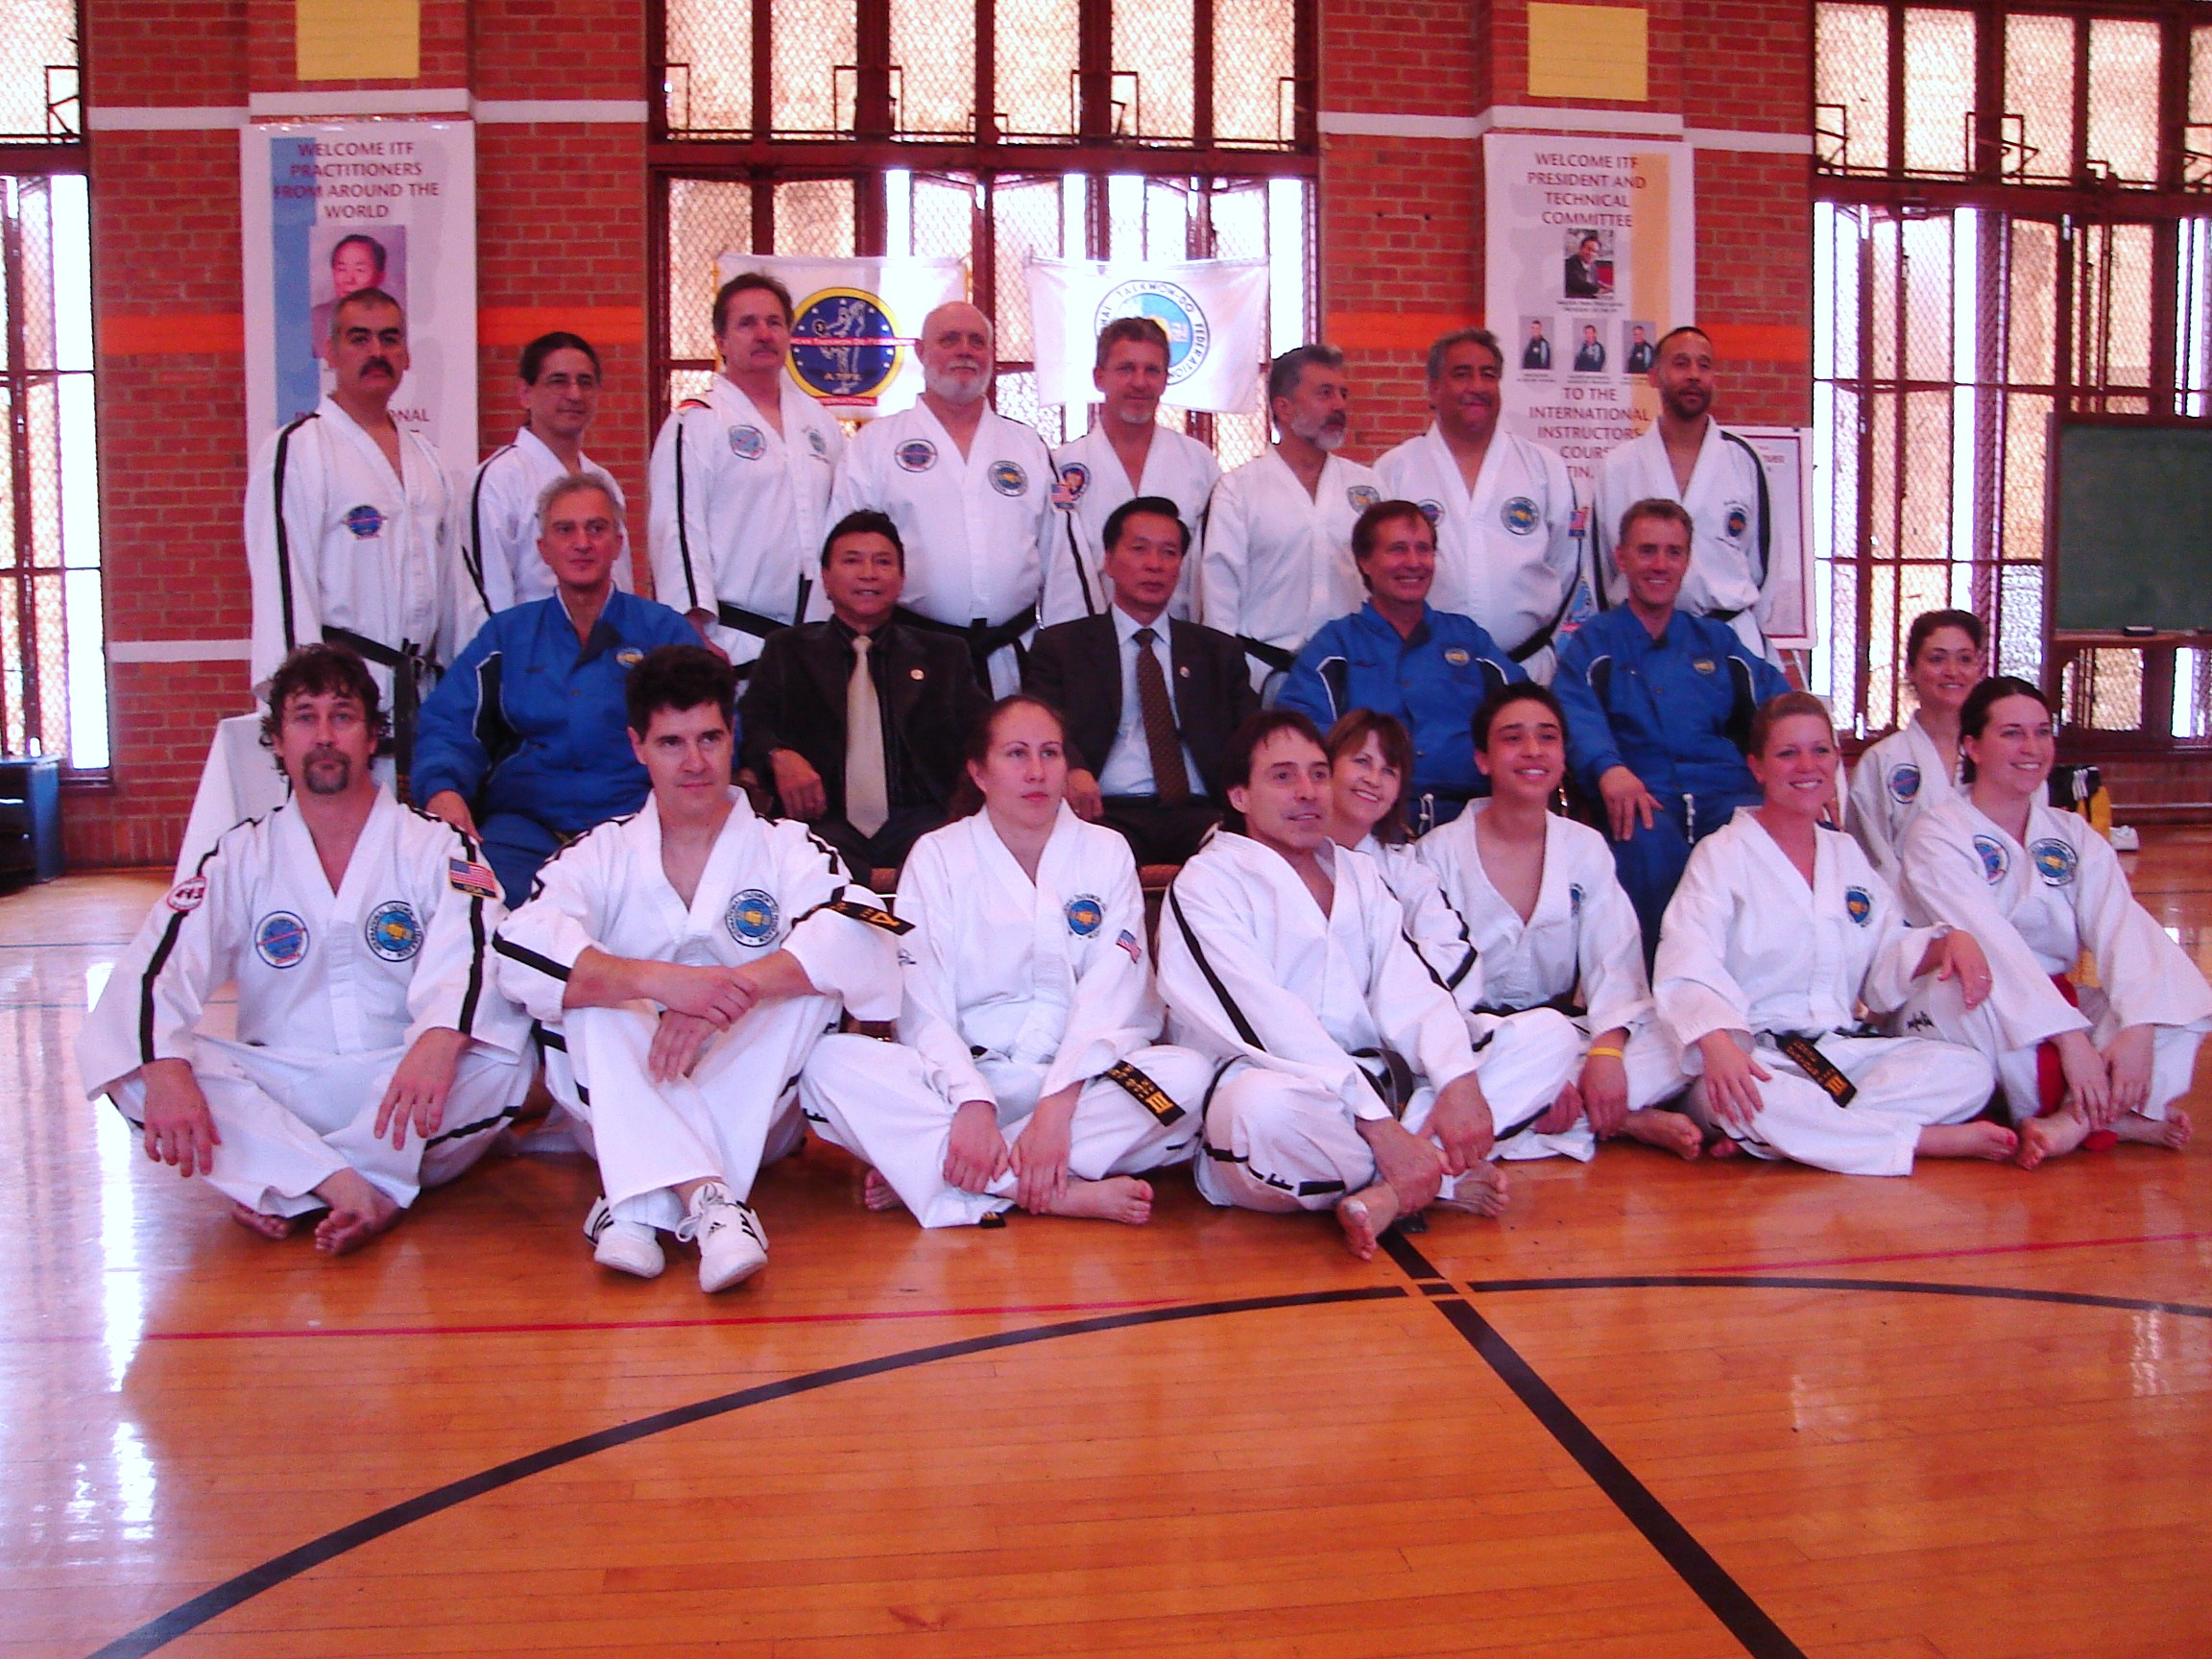 International instructors seminar 08